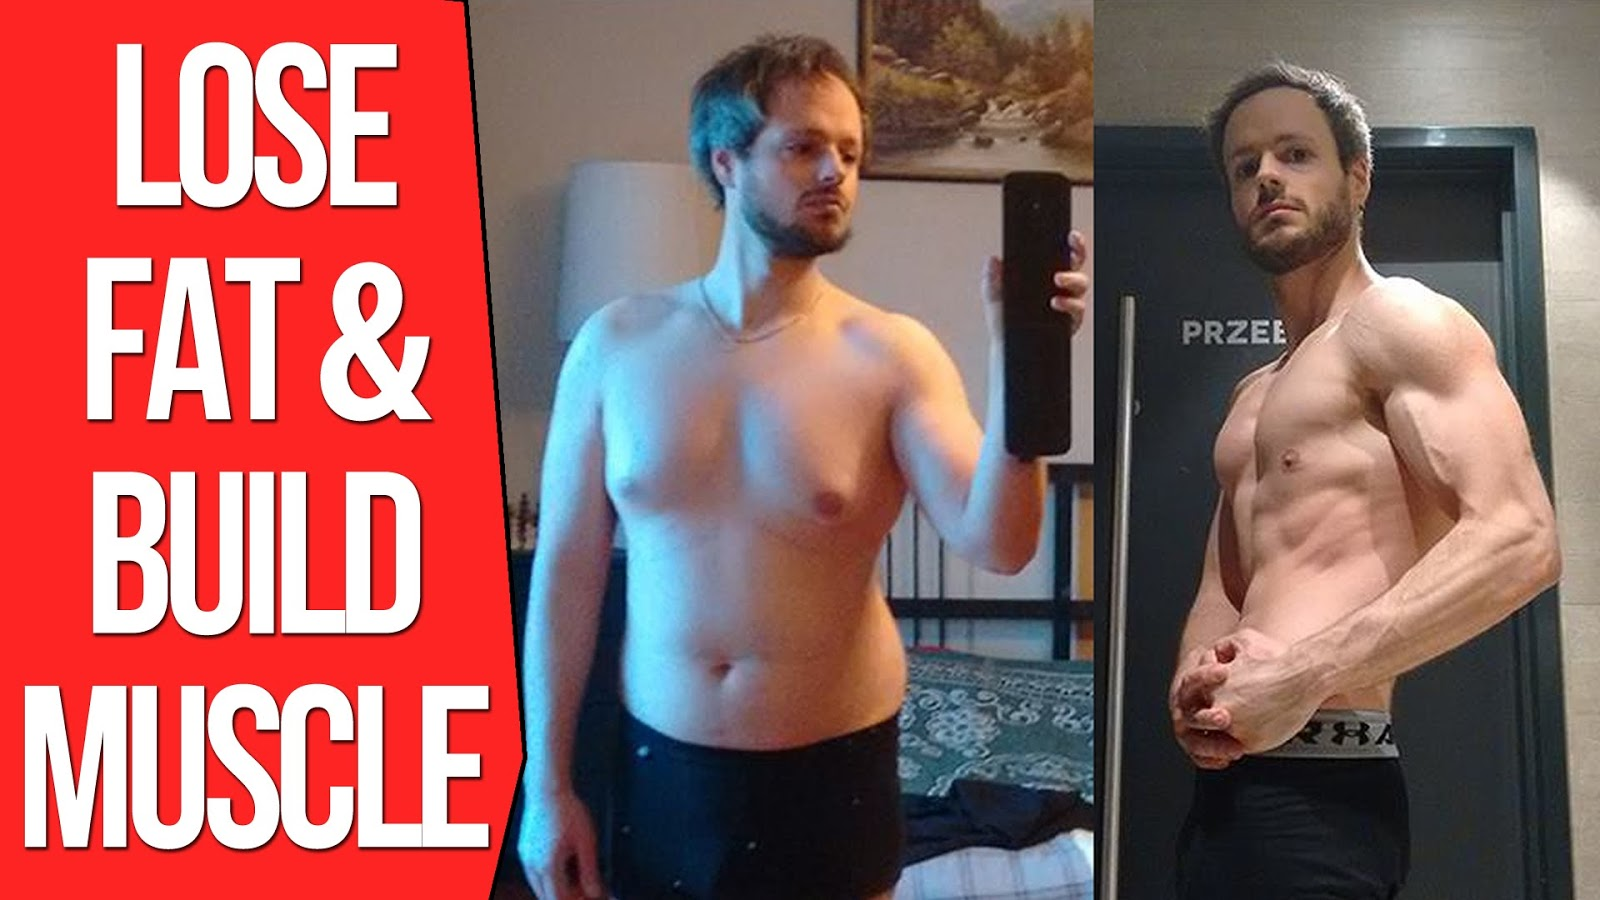 Is it Possible to Build Muscle and Lose Fat at the Same Time?